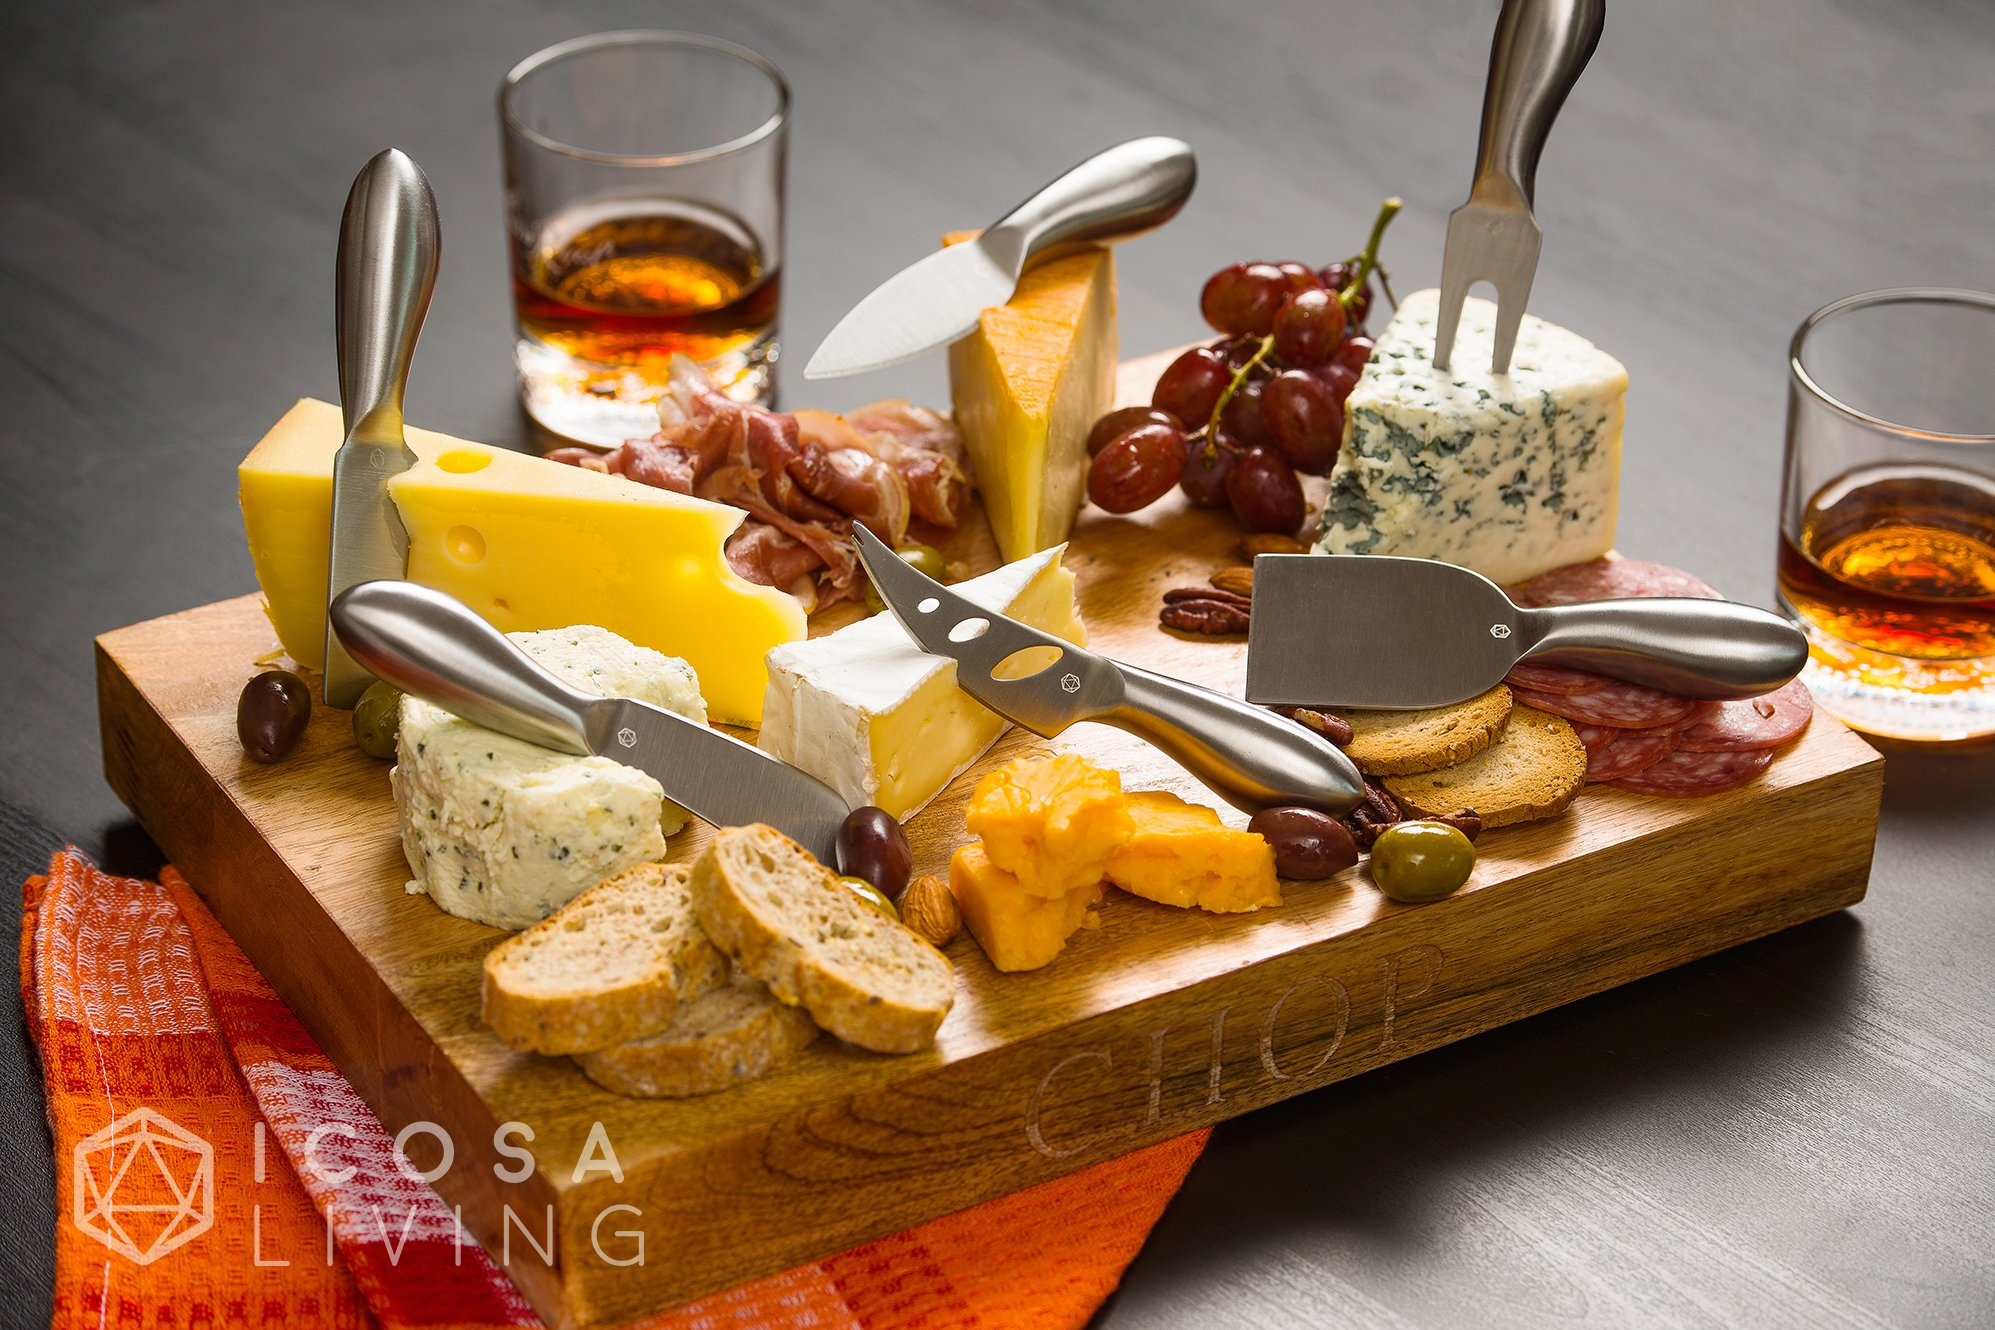 LUNAR Premium 6-Piece Cheese Knife Set - Complete Stainless Steel Cheese Knives Collection by ICOSA Living (Image #5)